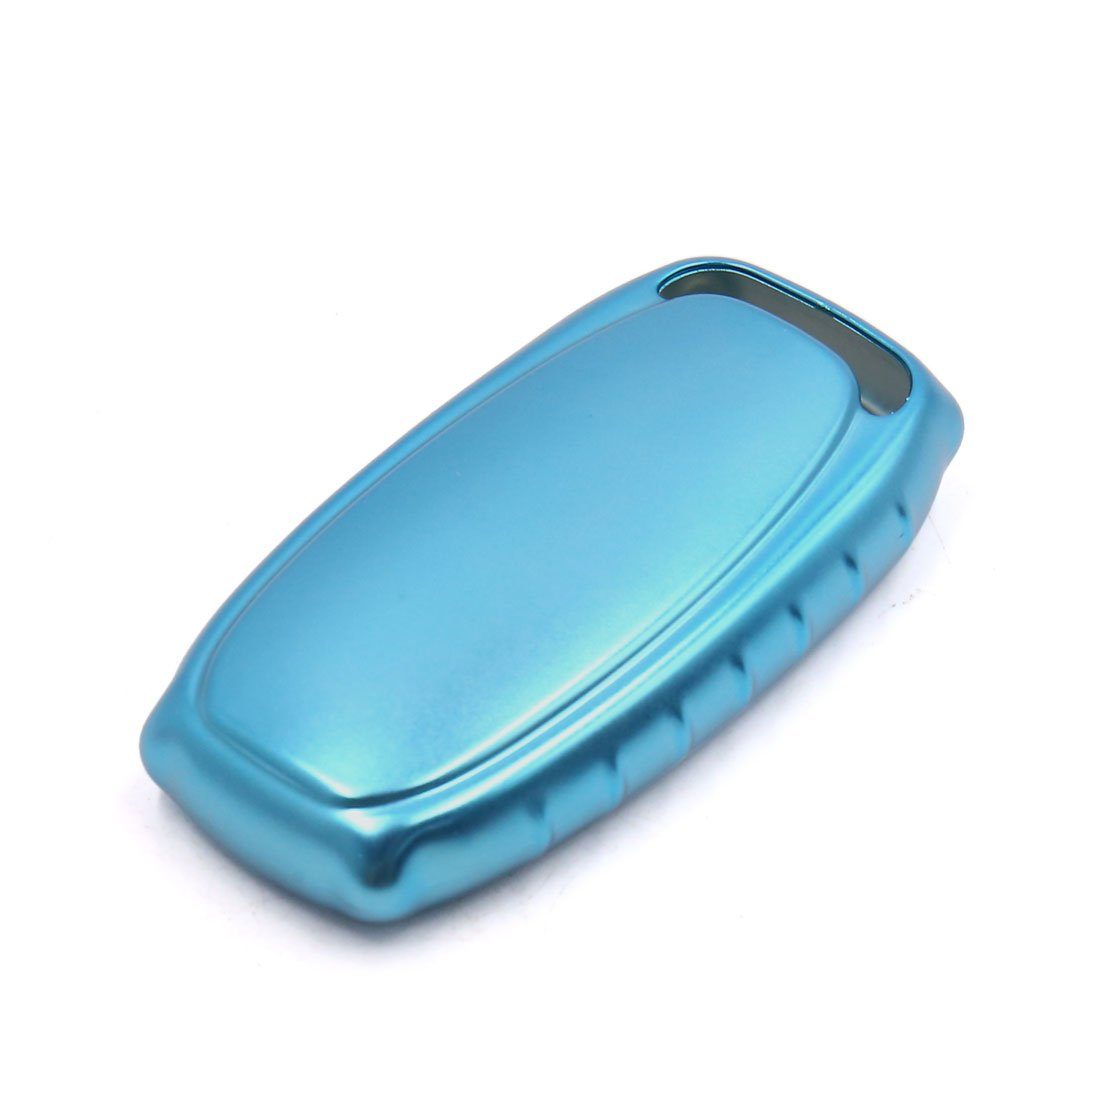 uxcell Blue Remote Key Case Holder Shell Protect Cover Fit For Audi A4L A6L A7 A8 S5 by uxcell